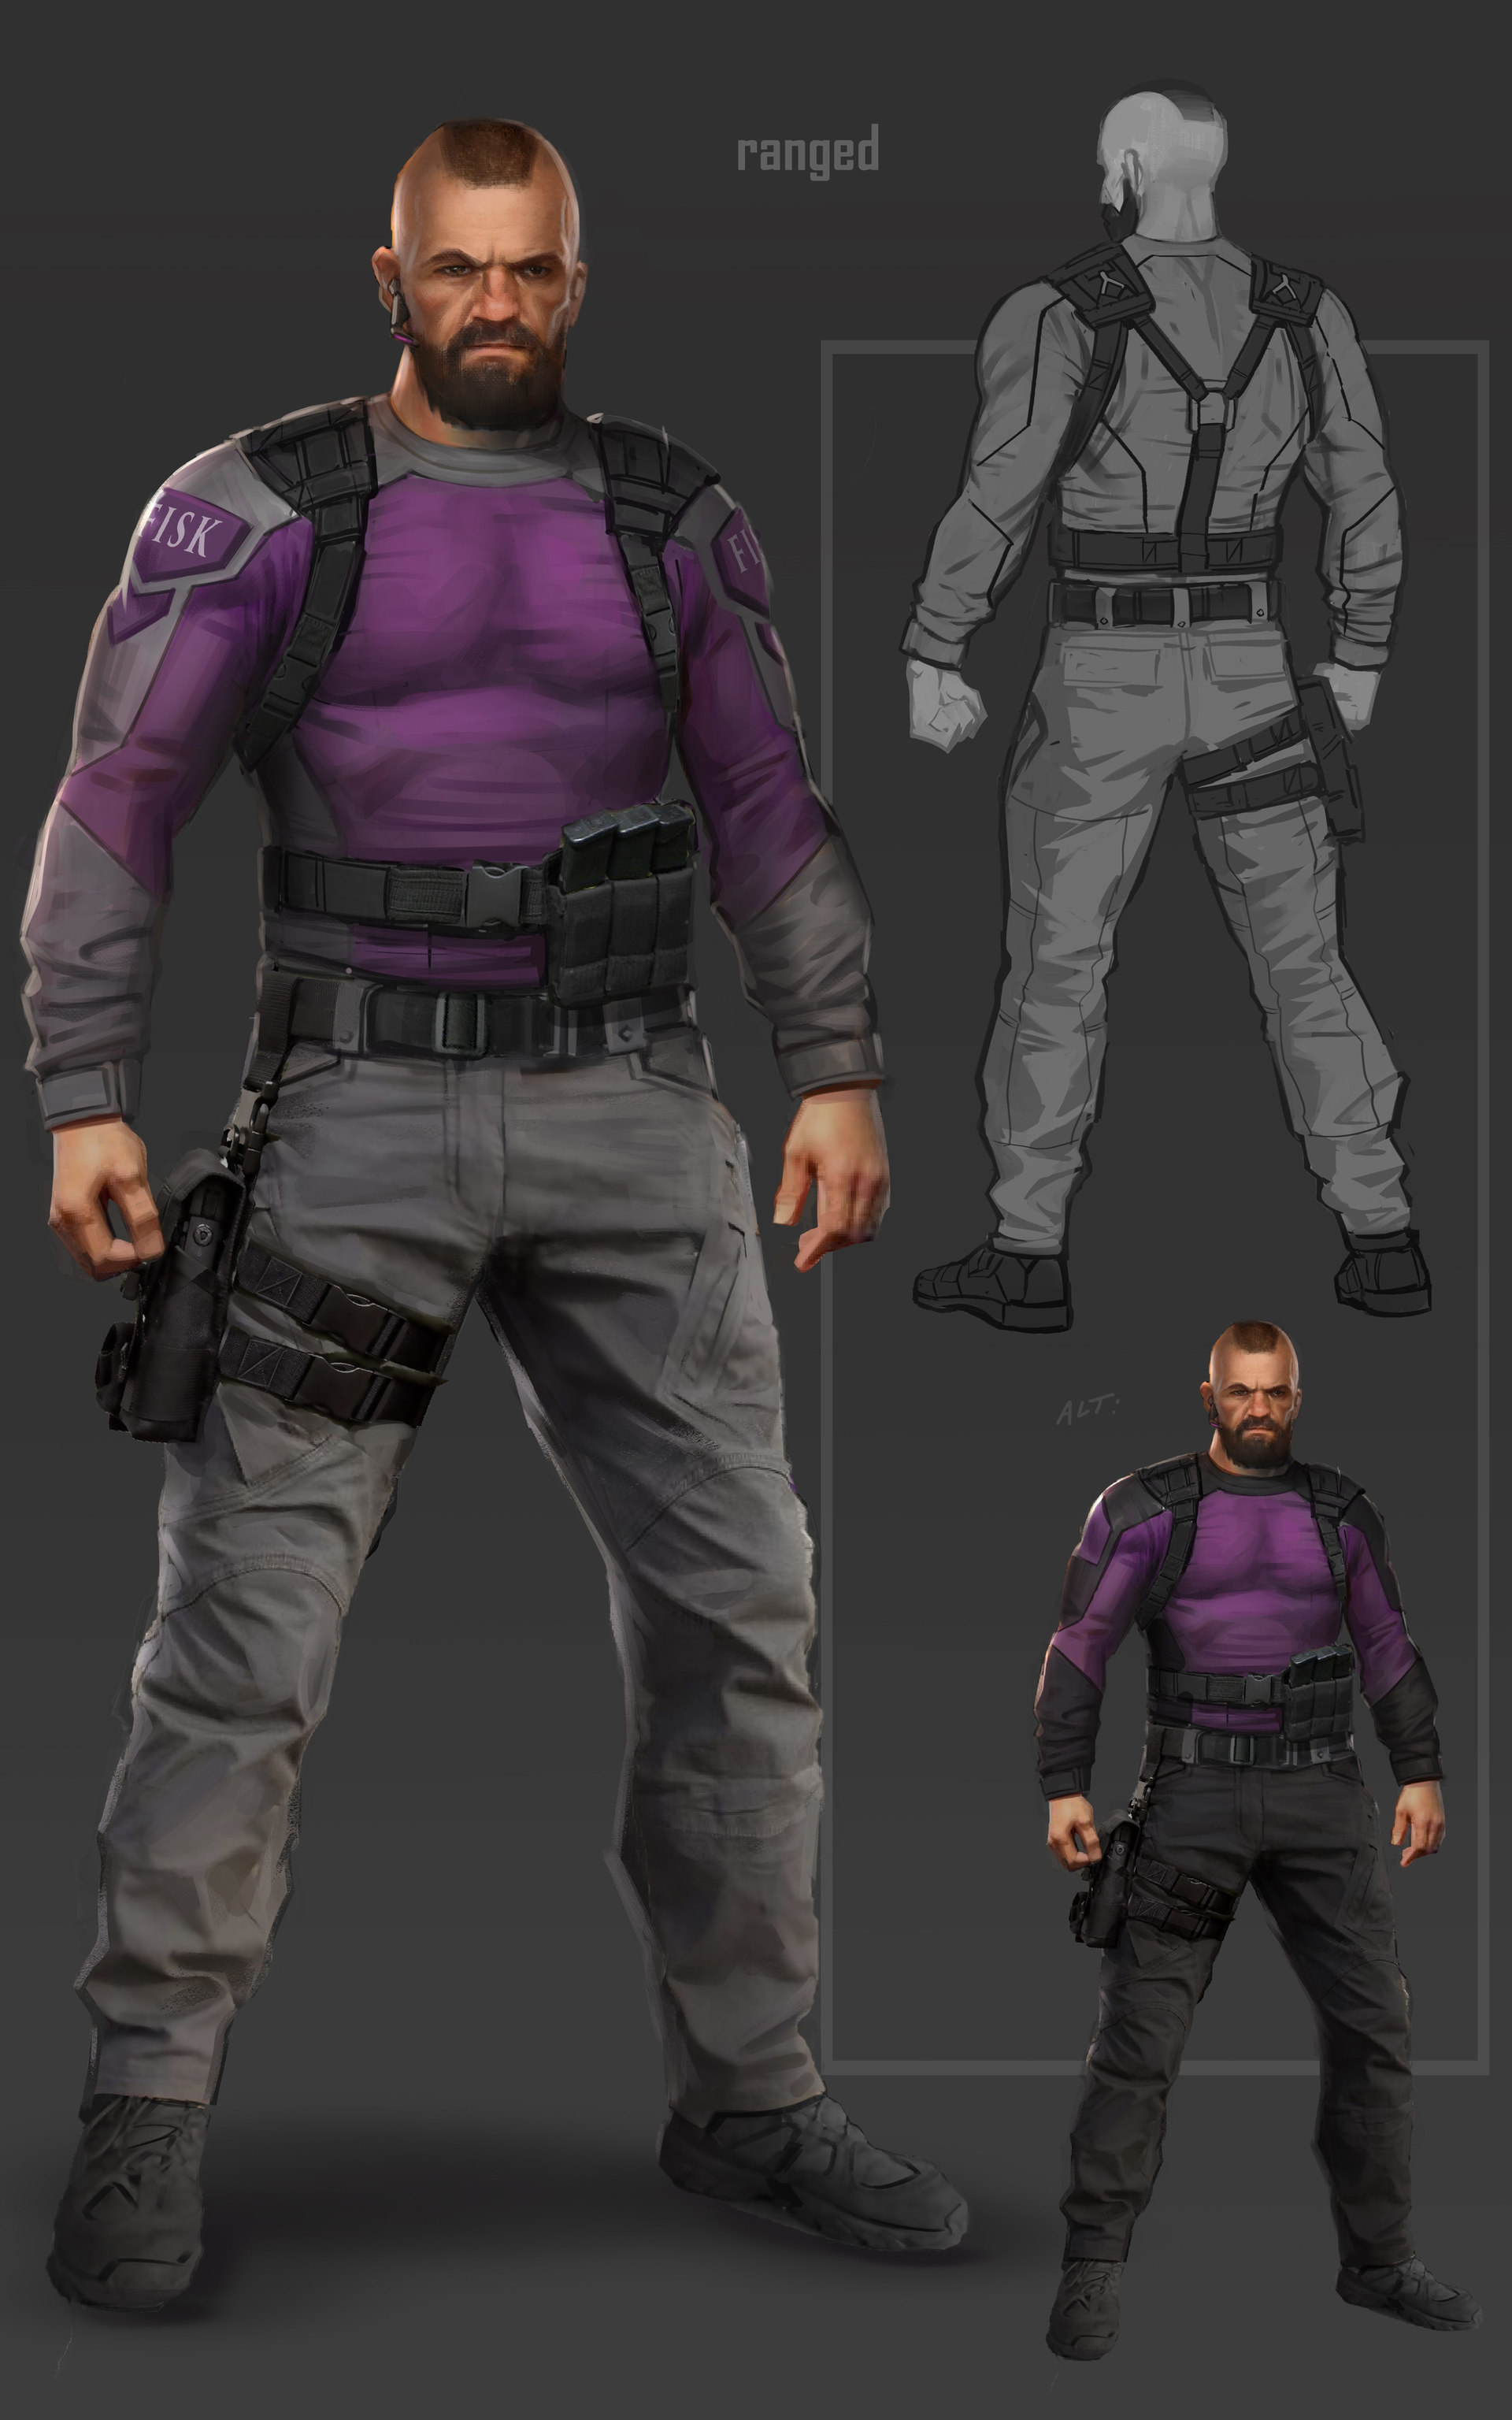 Spiderman - Fisk Security Guard Concept